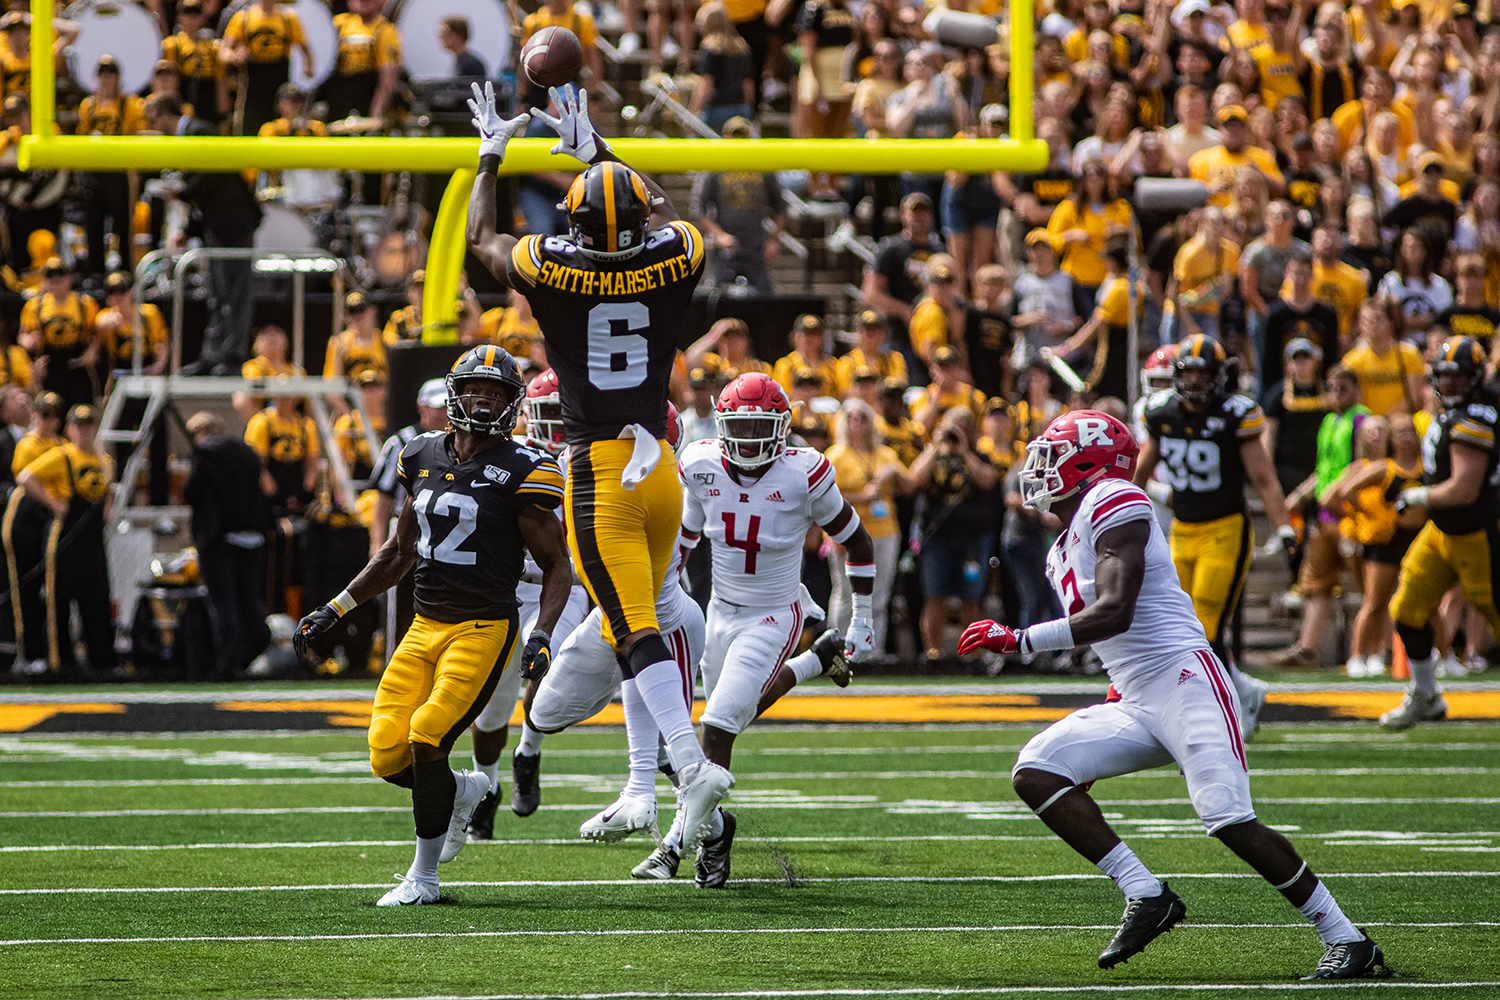 Iowa wide receiver Ihmir Smith-Marsette catches the ball during a football game between Iowa and Rutgers at Kinnick Stadium on Saturday, September 7, 2019. The Hawkeyes defeated the Scarlet Knights, 30-0. (Shivansh Ahuja/The Daily Iowan)